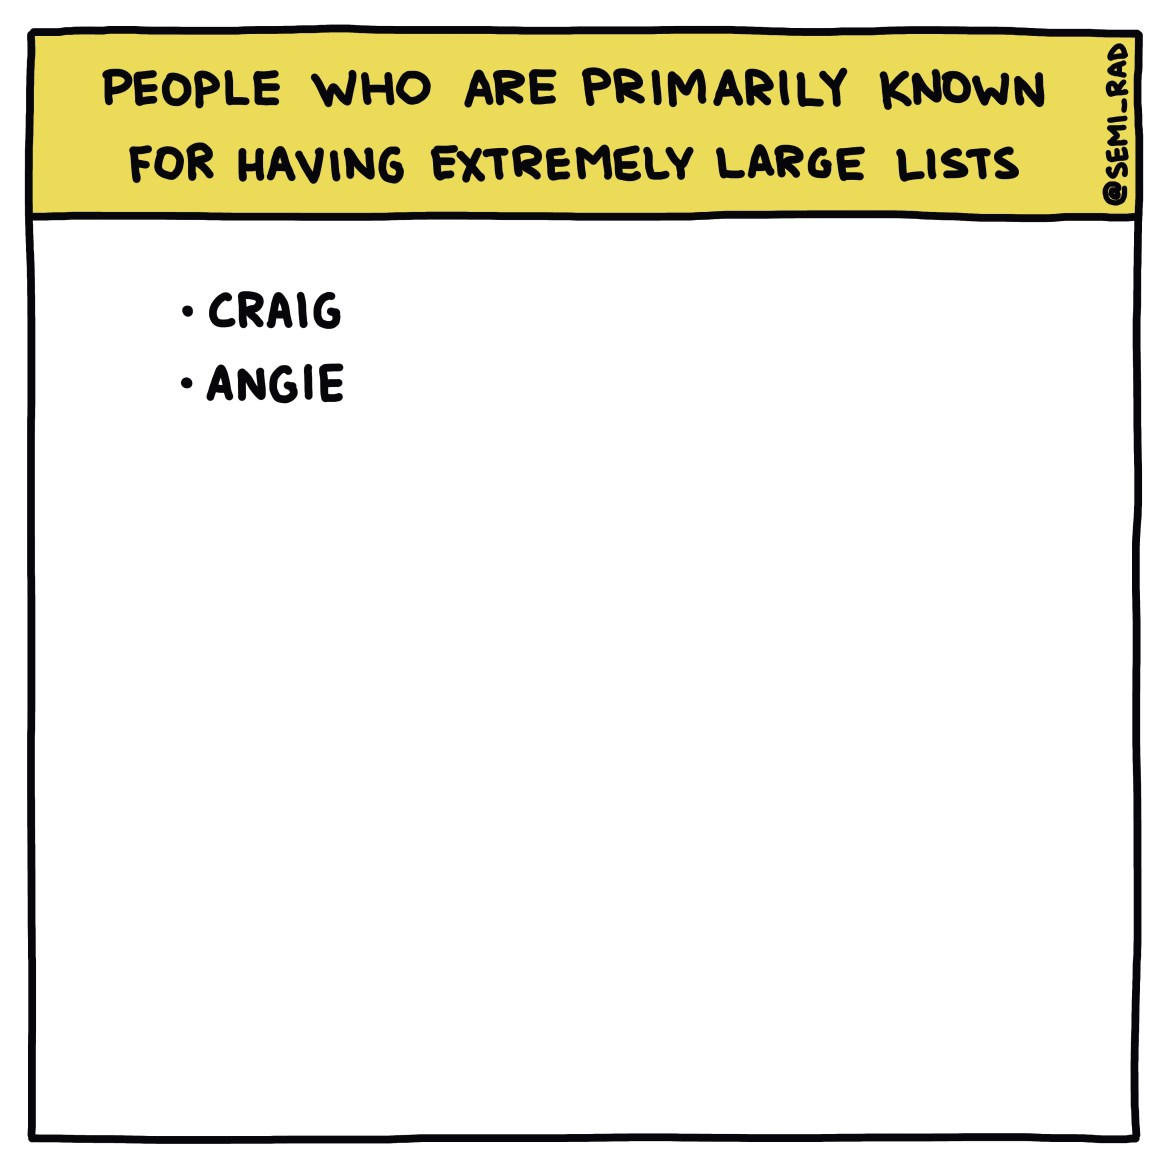 semi-rad chart: People Who Are Primarily Known For Having Extremely Large Lists